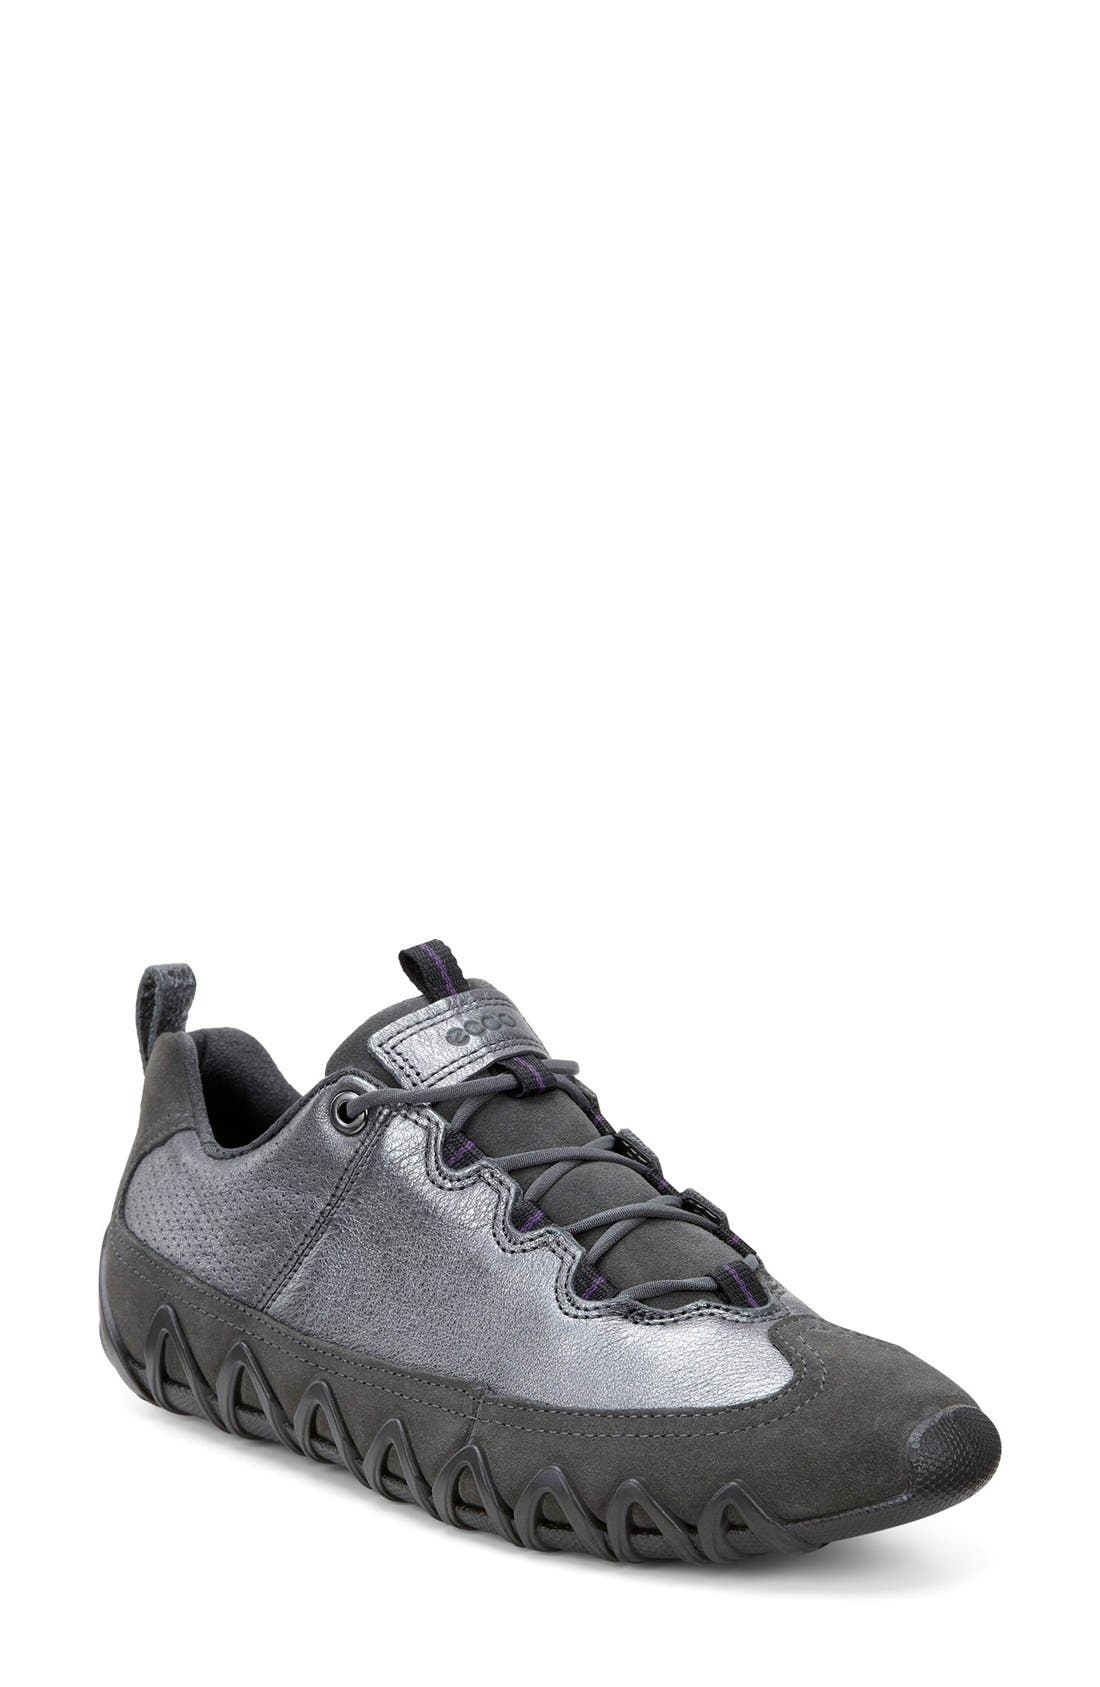 Main Image - ECCO 'Dayla' Toggle Sneaker (Women)